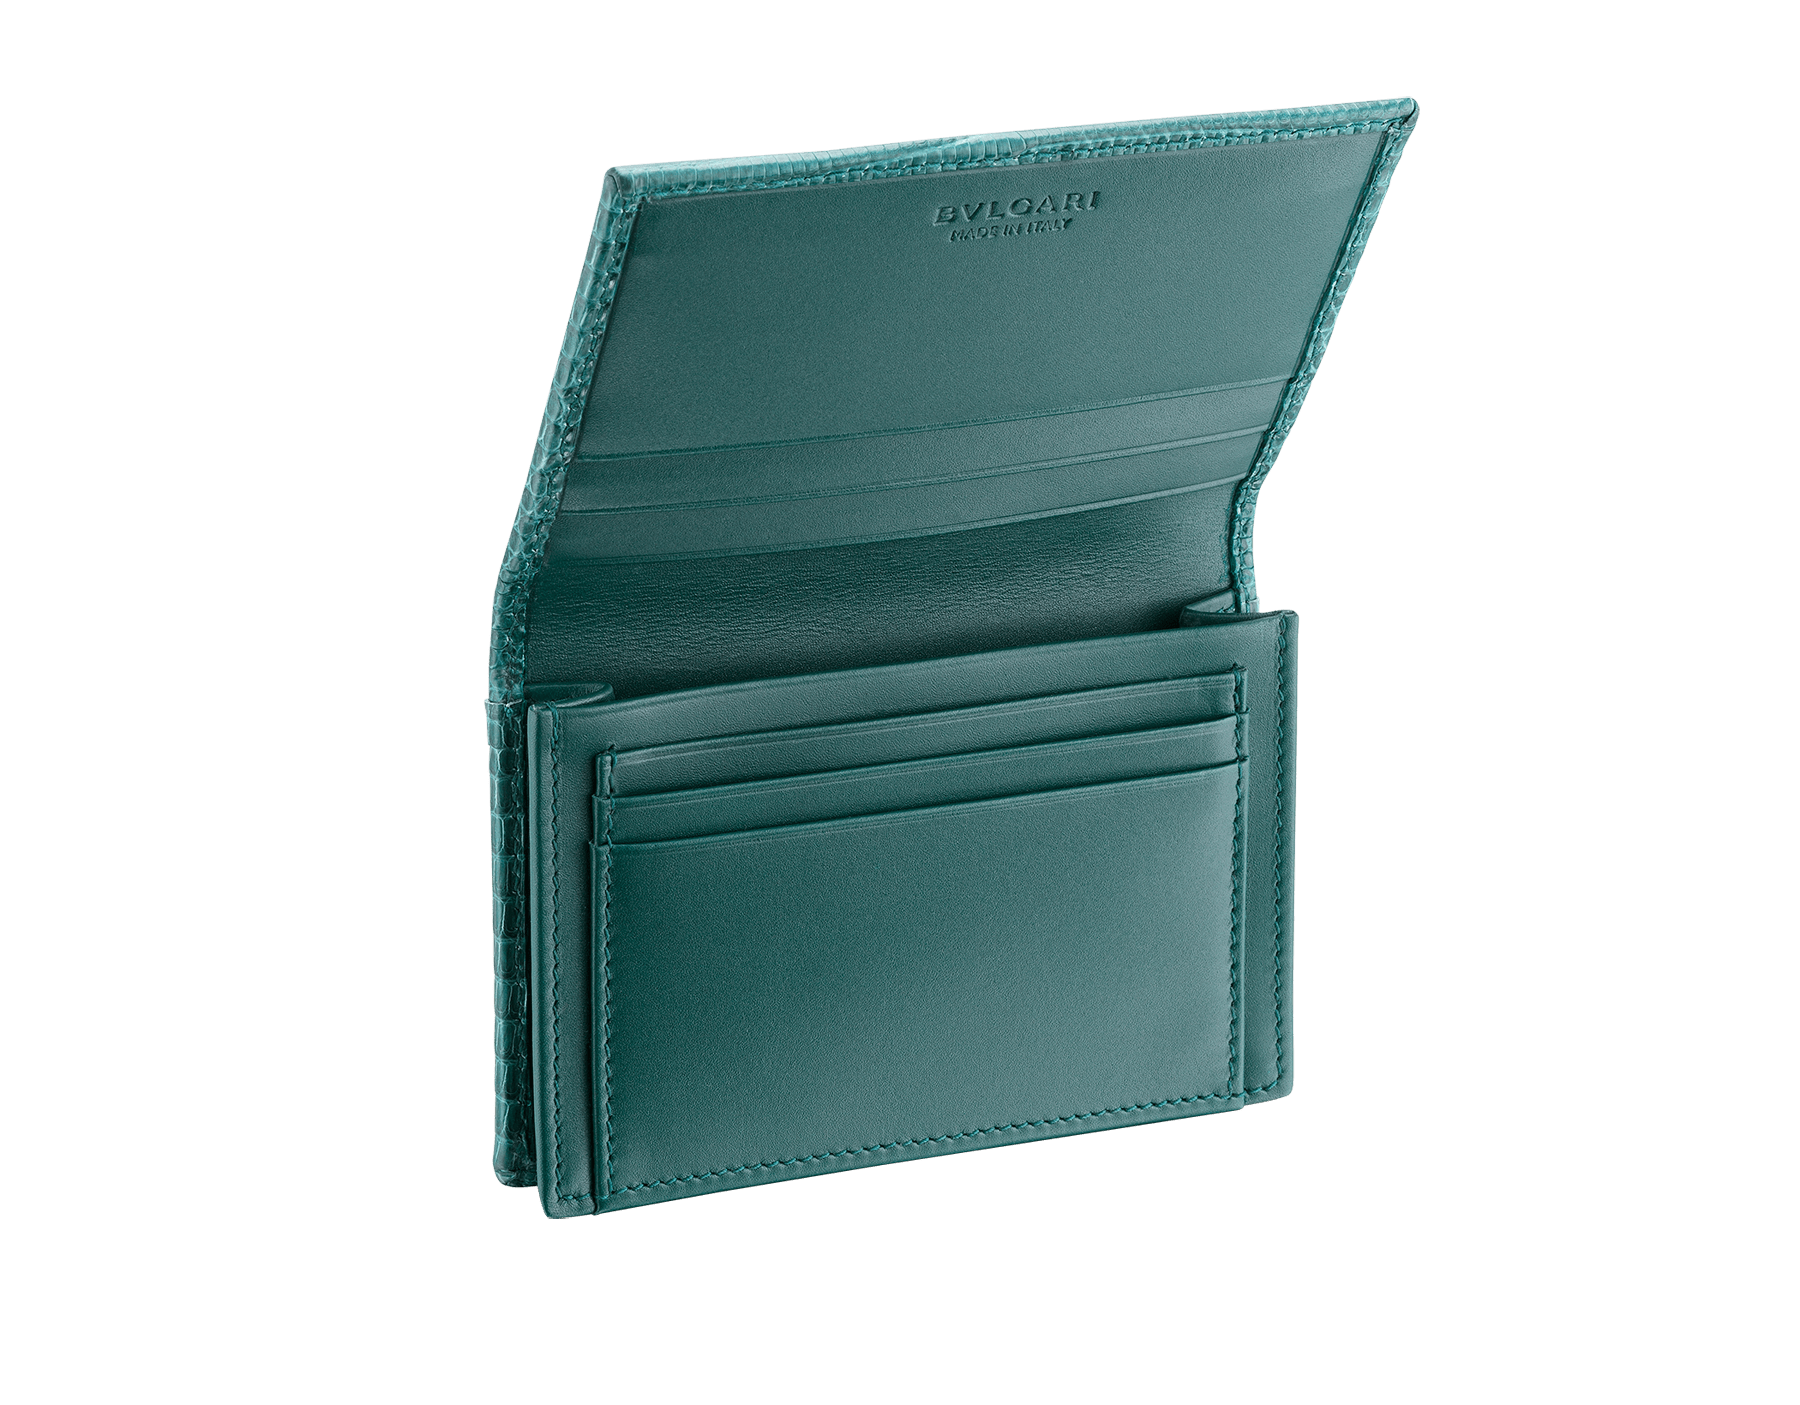 BVLGARI BVLGARI business card holder in forest emerald shiny lizard skin, with brass palladium plated logo décor. 289395 image 2